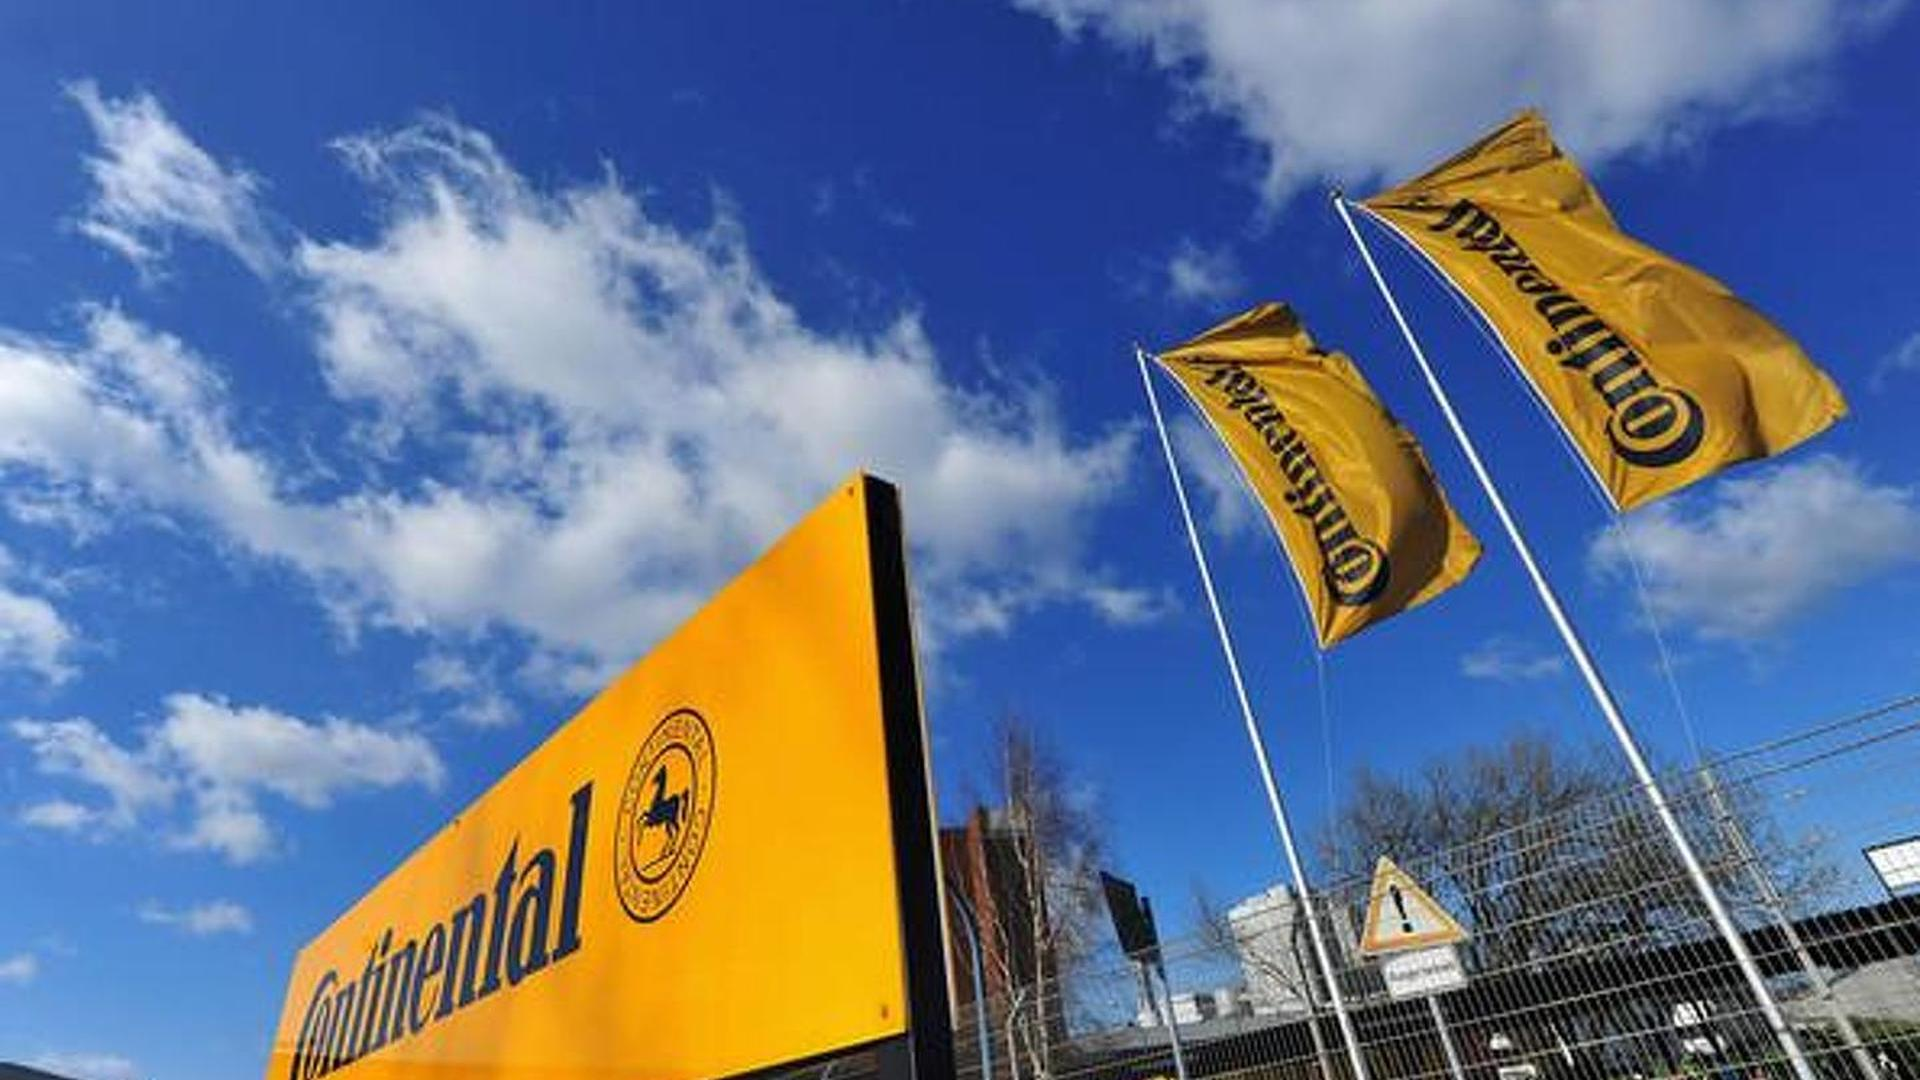 Continental says their software for 1.6 TDI engine was not designed to allow cheating